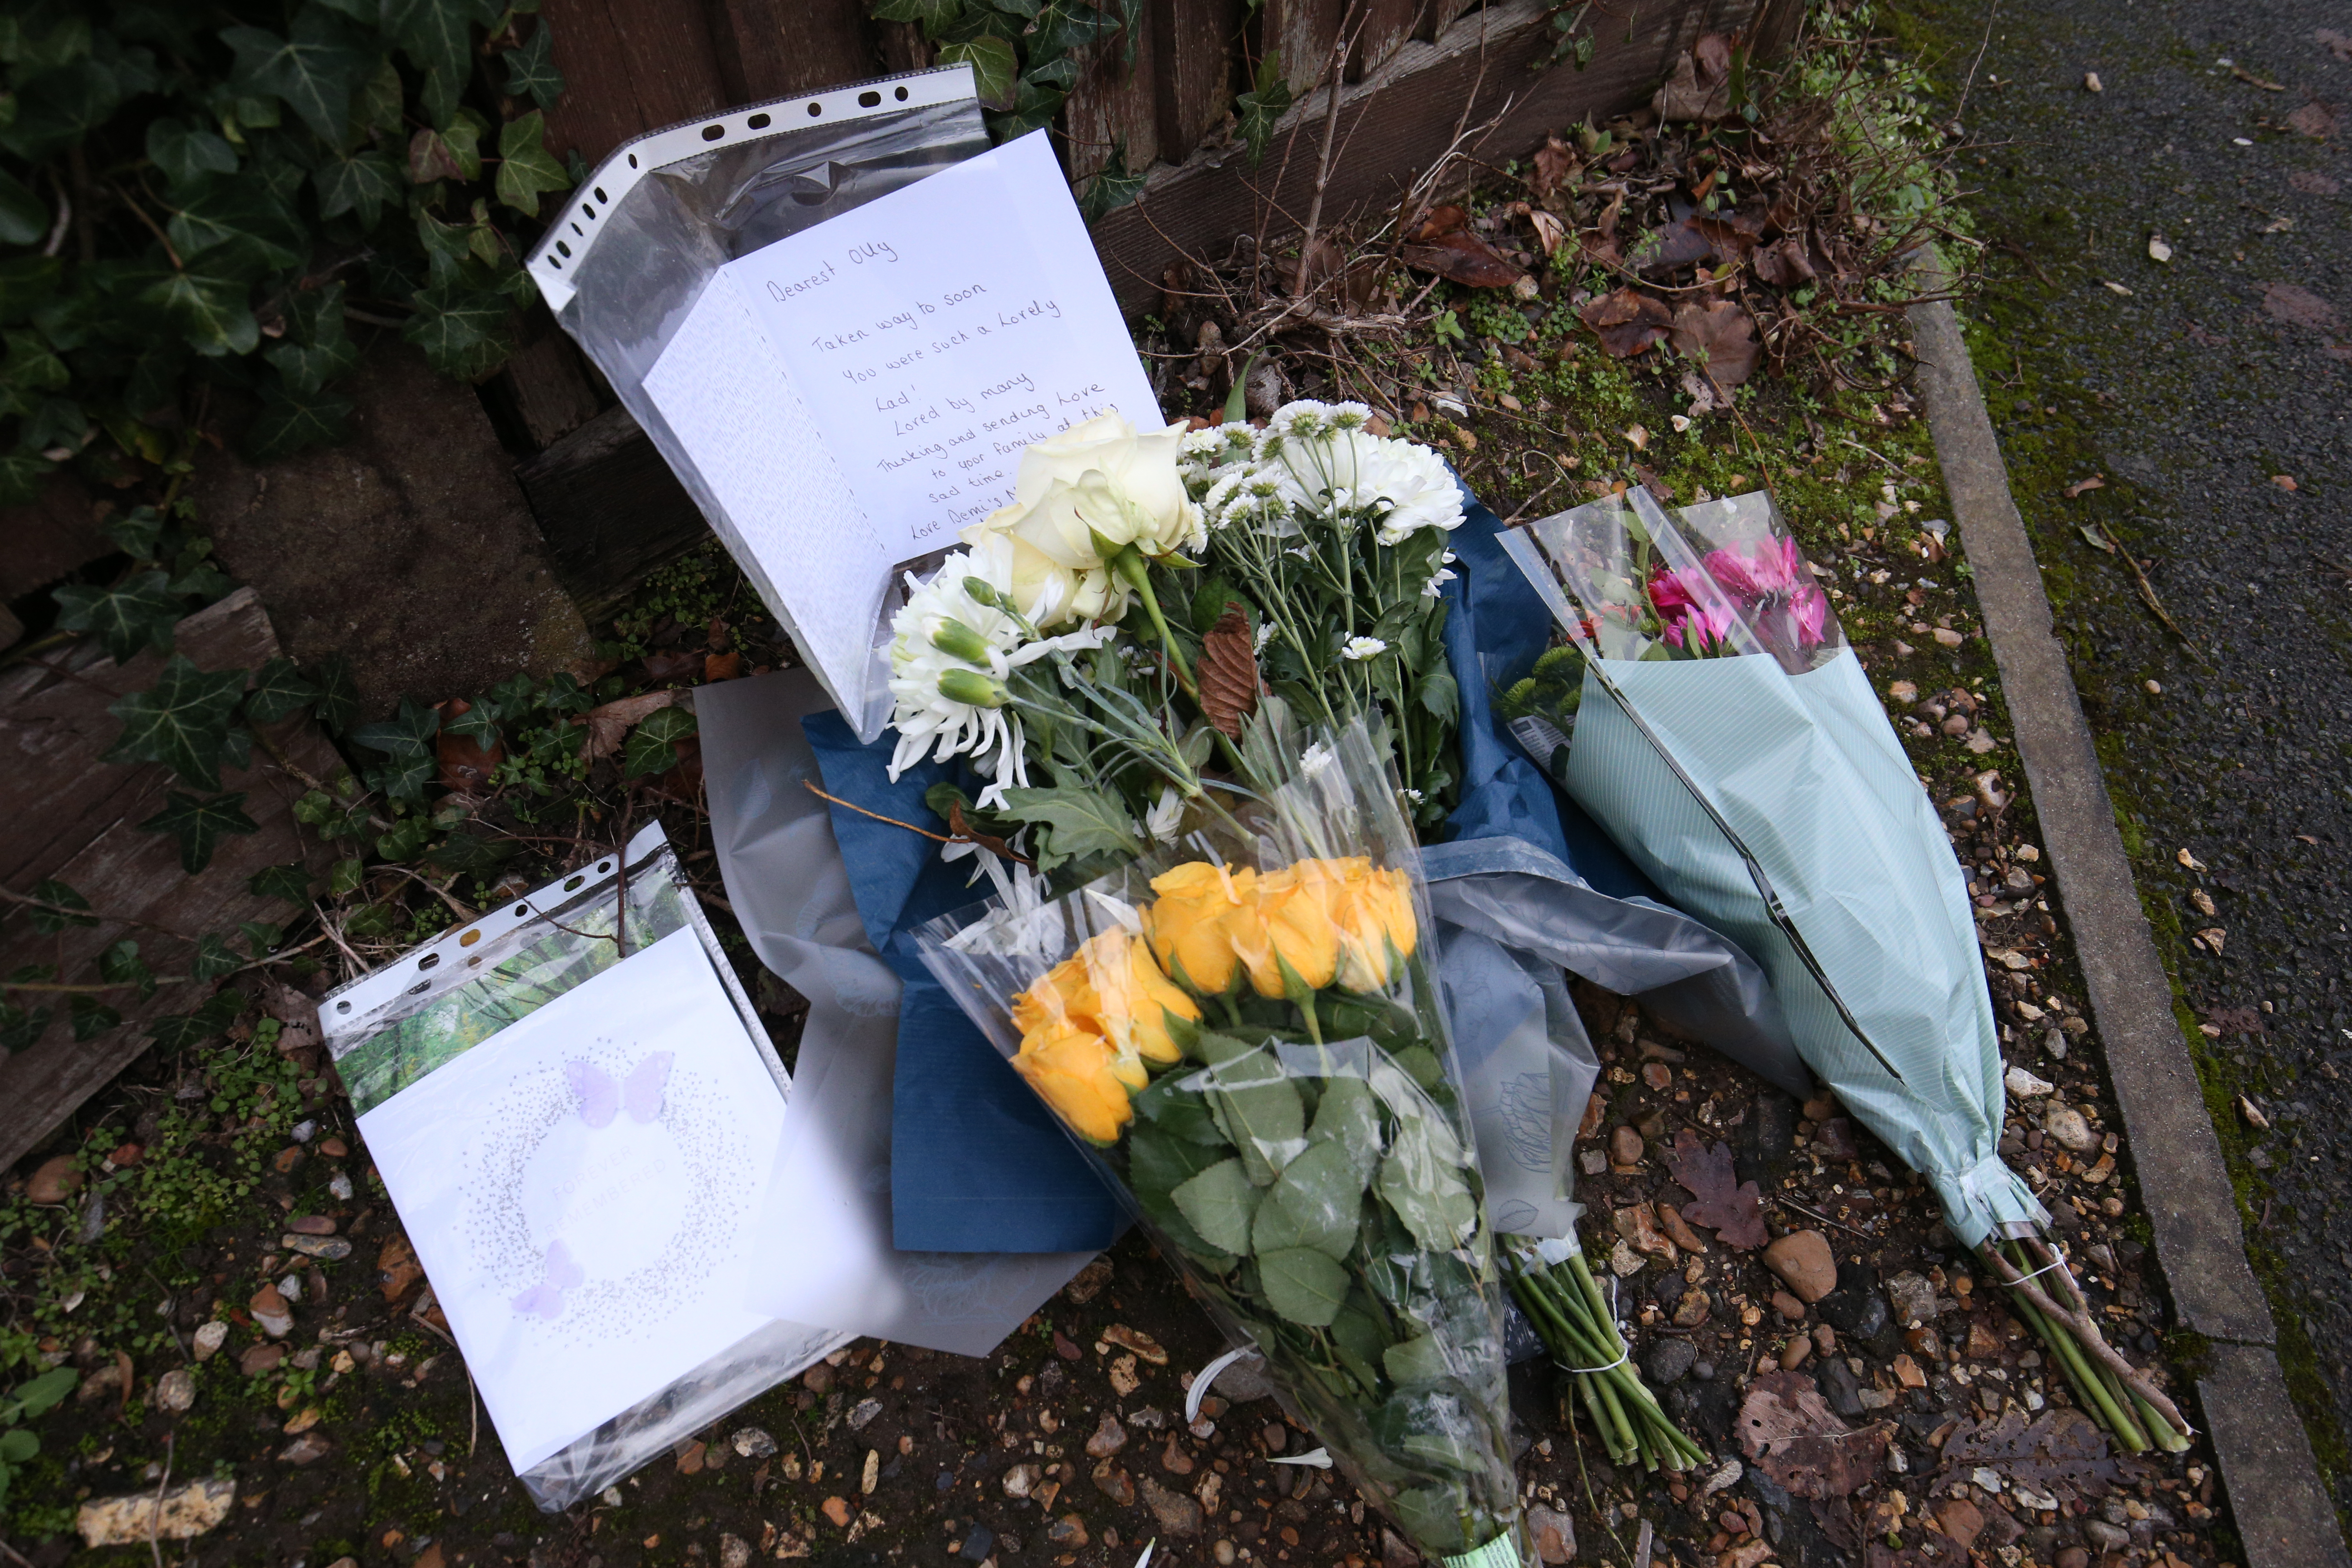 Floral tributes and a card left at the scene in Emmer Green, Reading, where a 13-year-old boy died after being stabbed on Sunday.